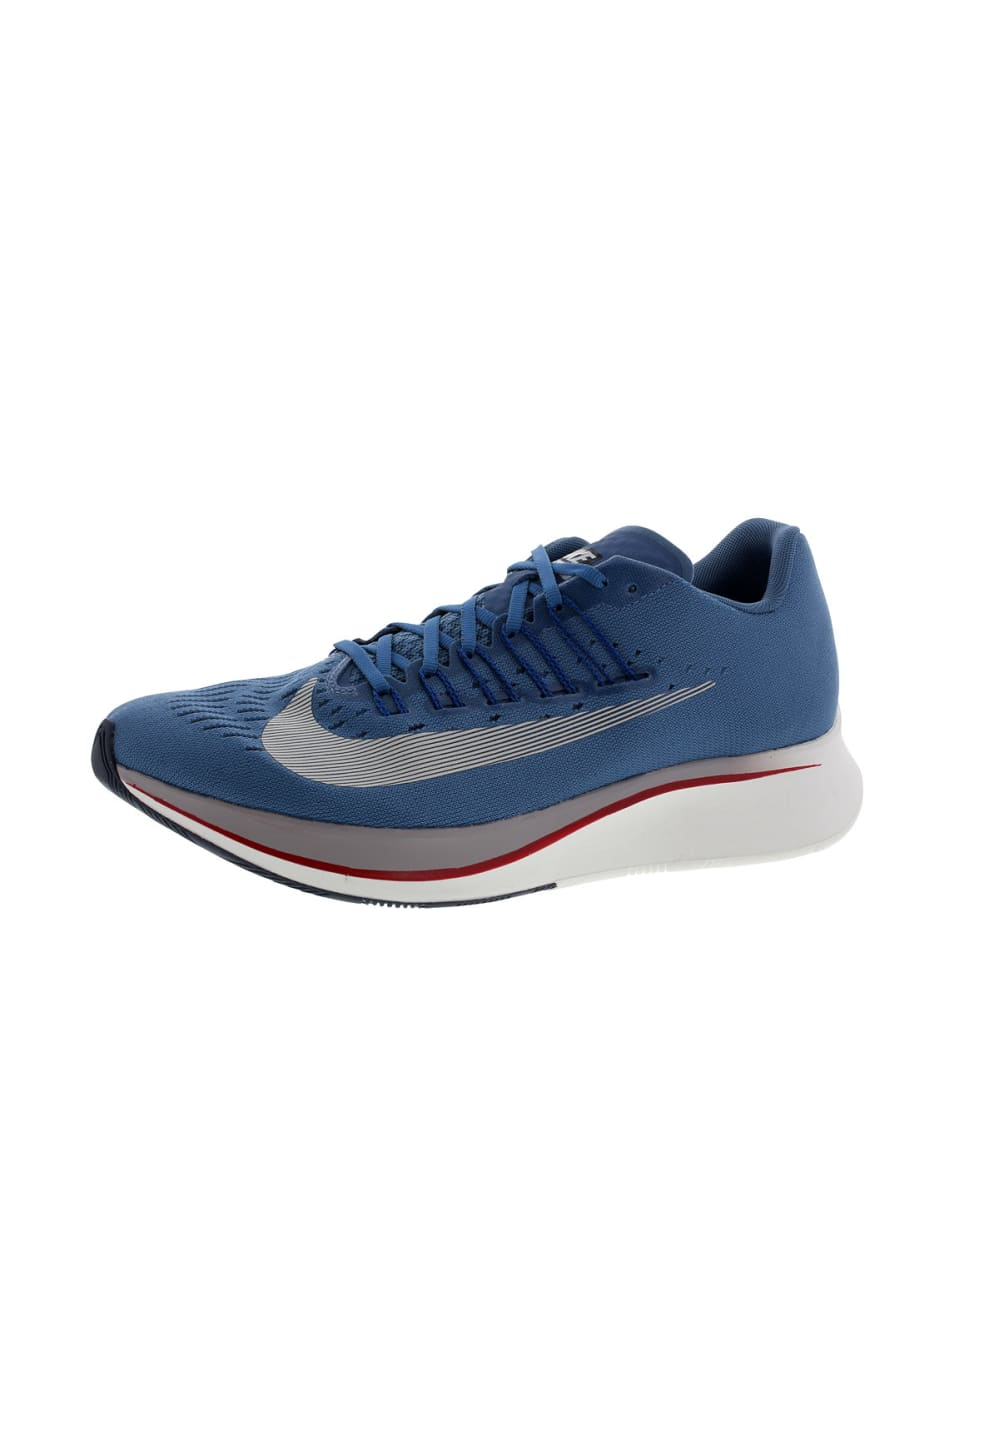 factory authentic dbe02 8f25b Nike Zoom Fly - Chaussures running pour Homme - Bleu   21RUN